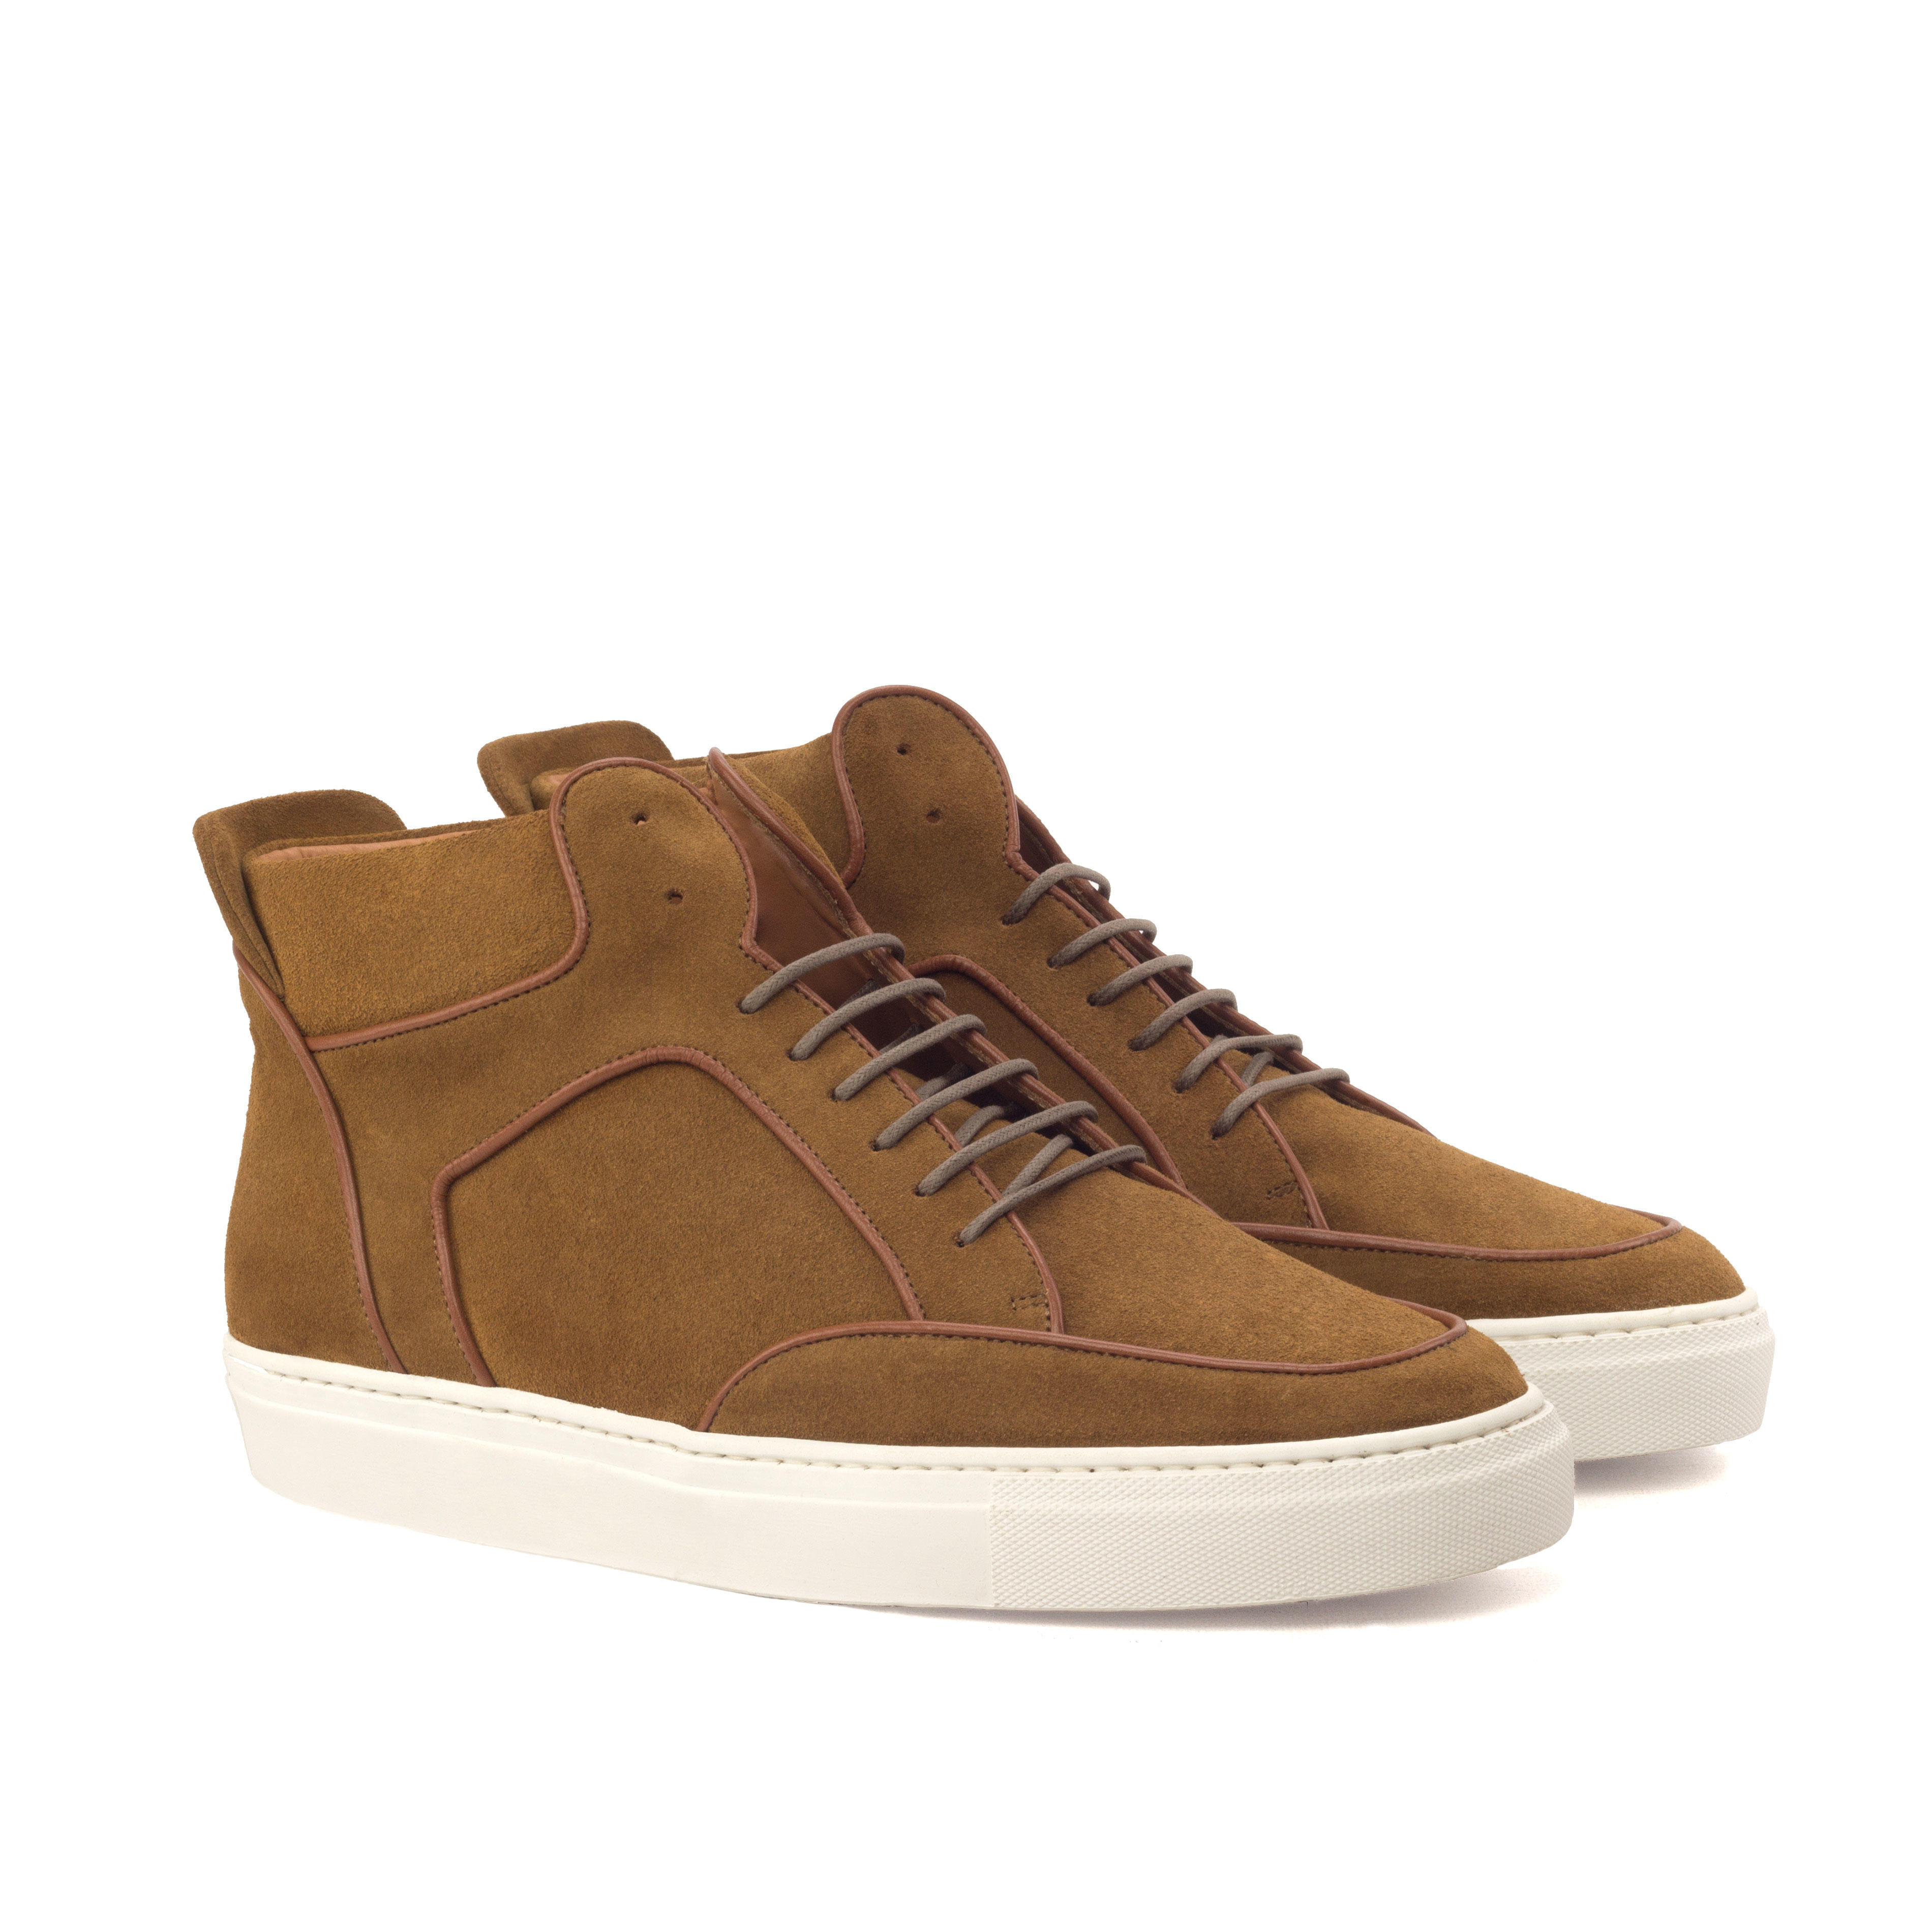 Manor of London 'The Hamilton' Camel Suede High-Top Trainer Luxury Custom Initials Monogrammed Front Side View